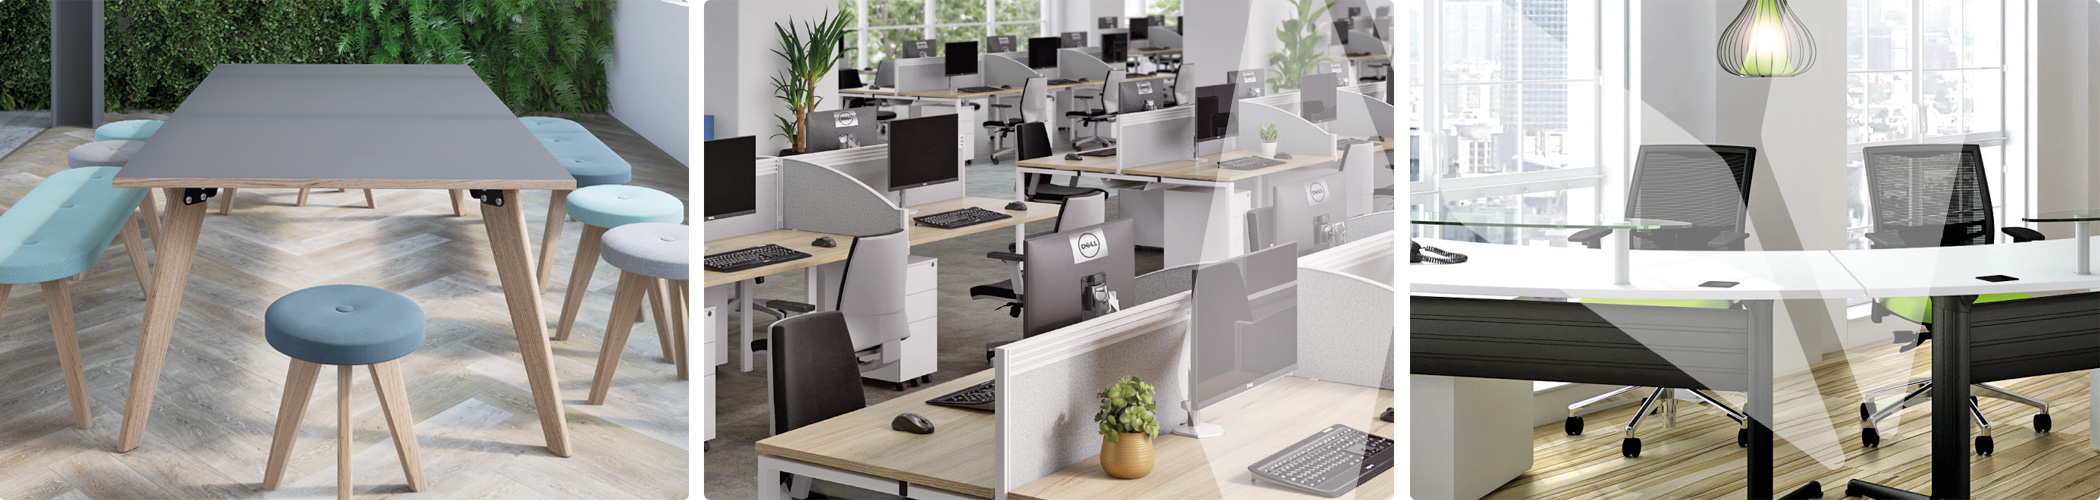 Neil Andrew Office Solutions are a leading provider and installer of office and educational furniture in the UK